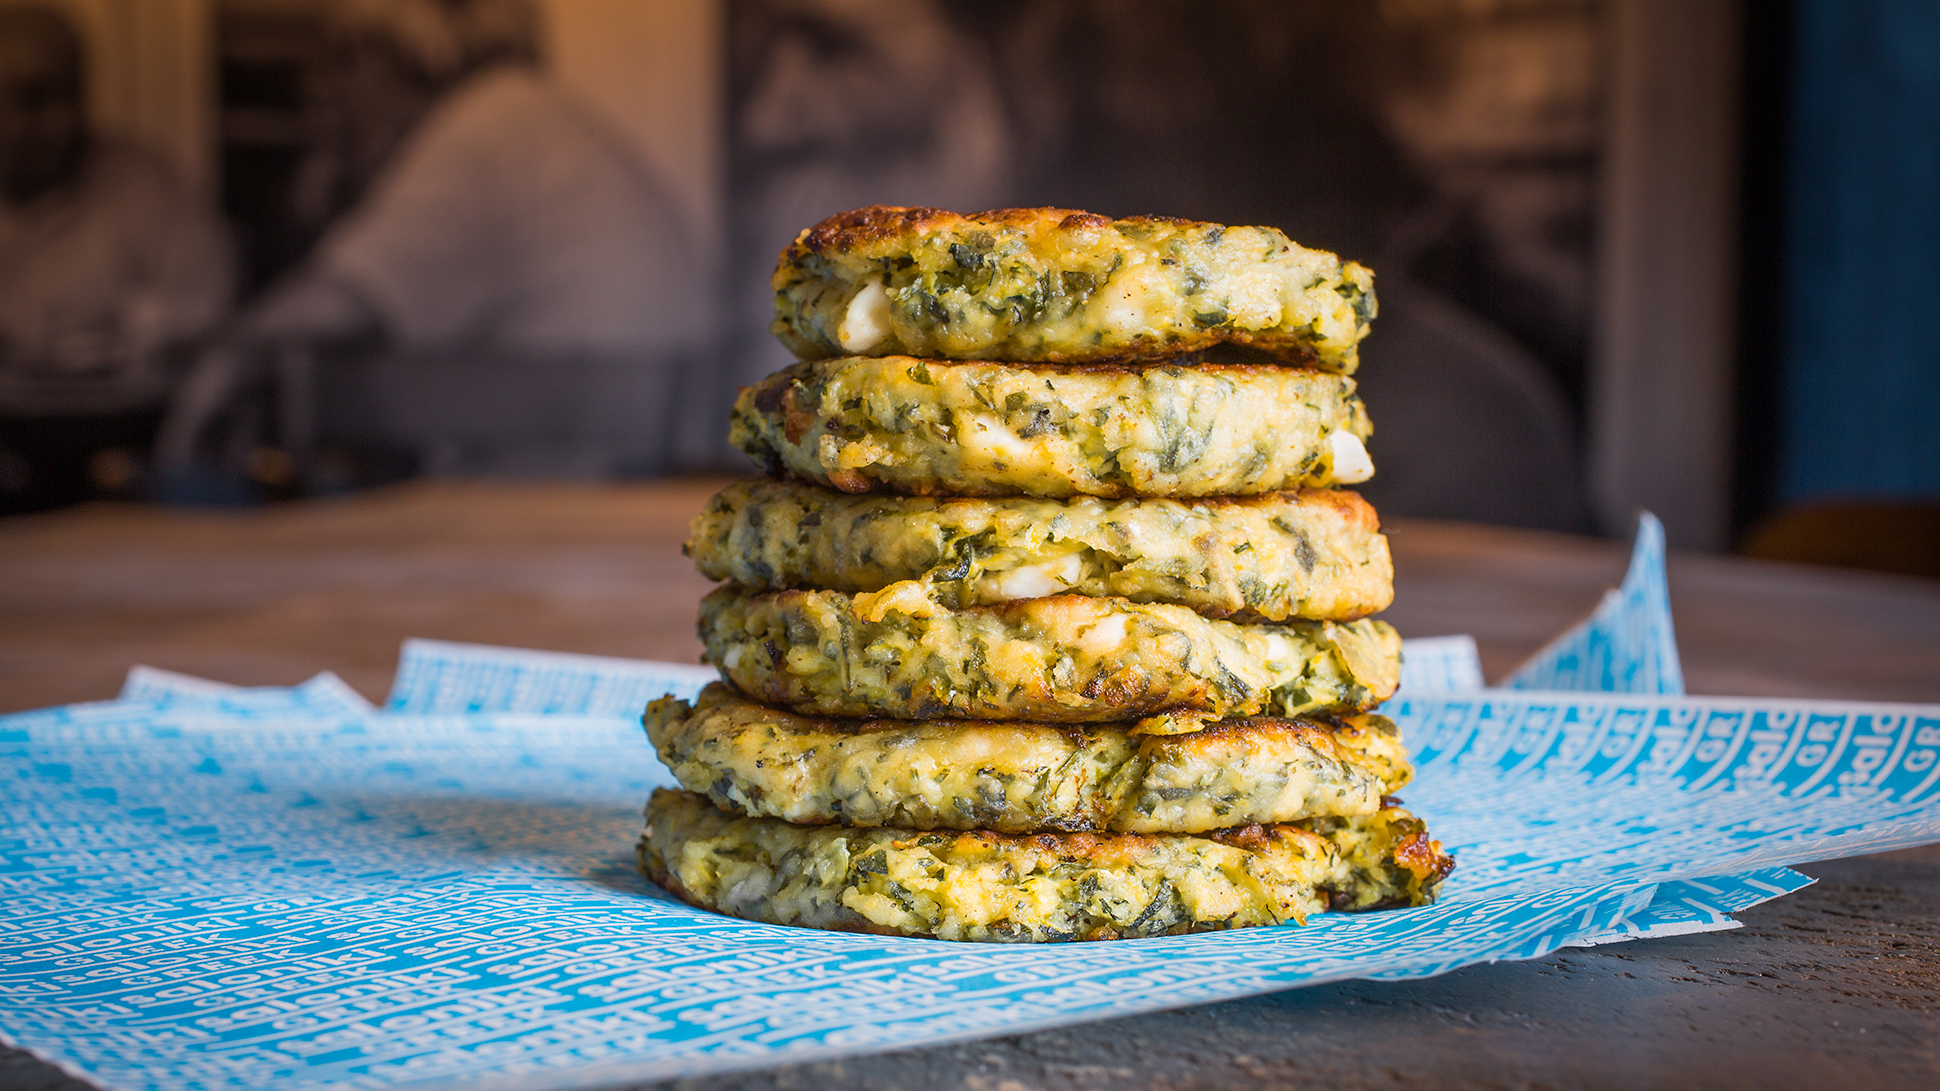 How to Make Jody Adams' Zuchinni Fritters